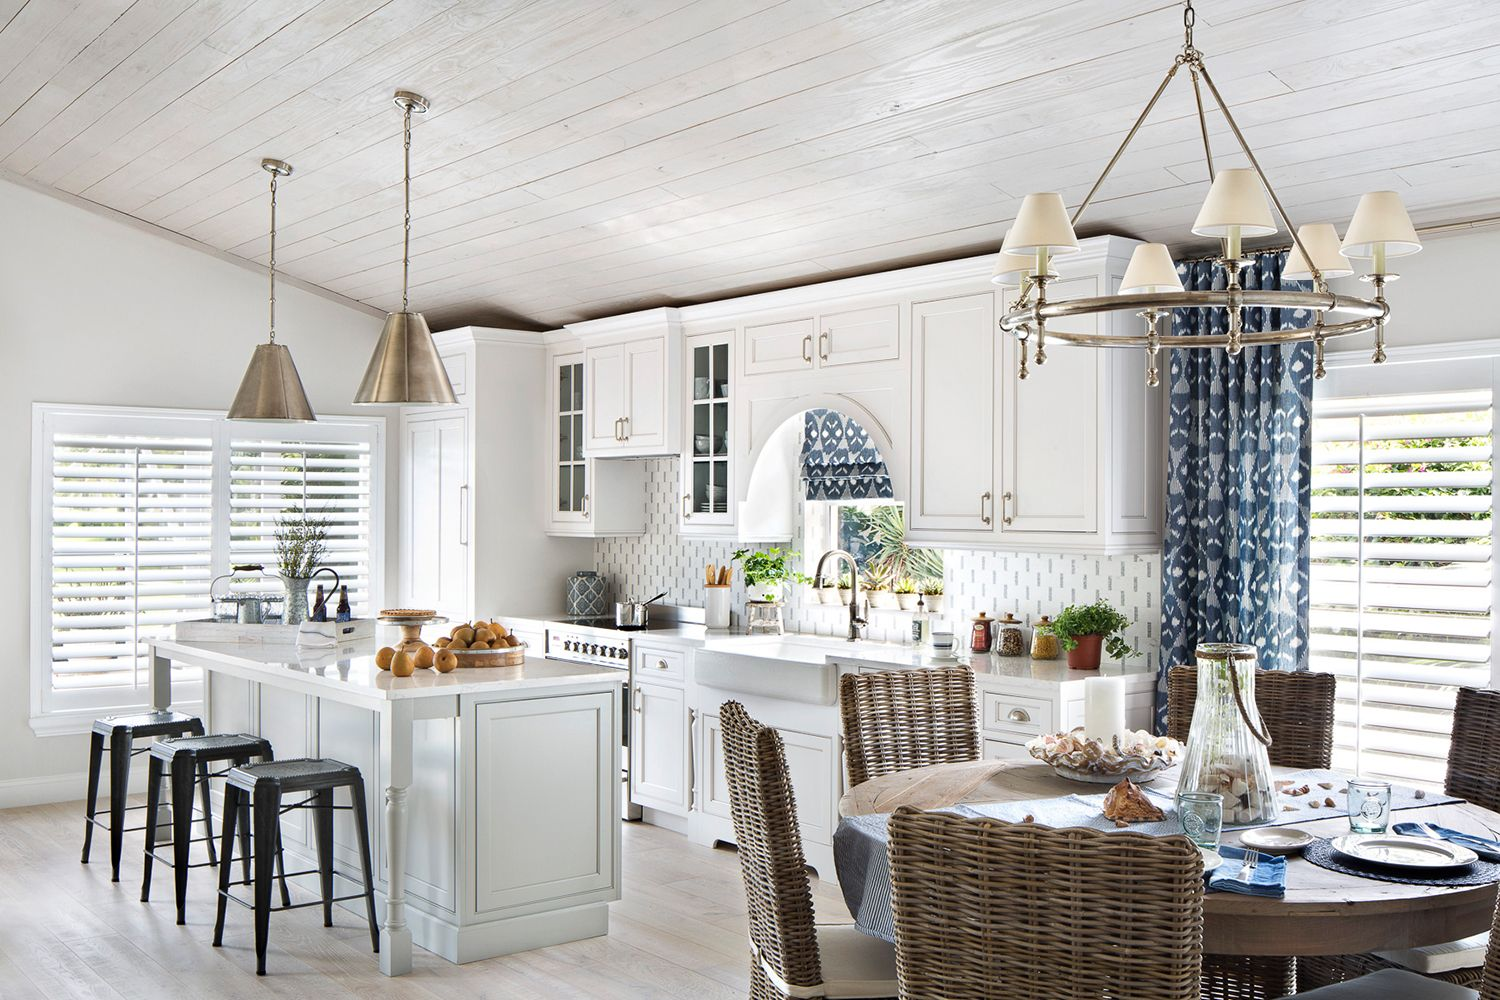 eat-in kitchen ideas for your home - eat-in kitchen designs